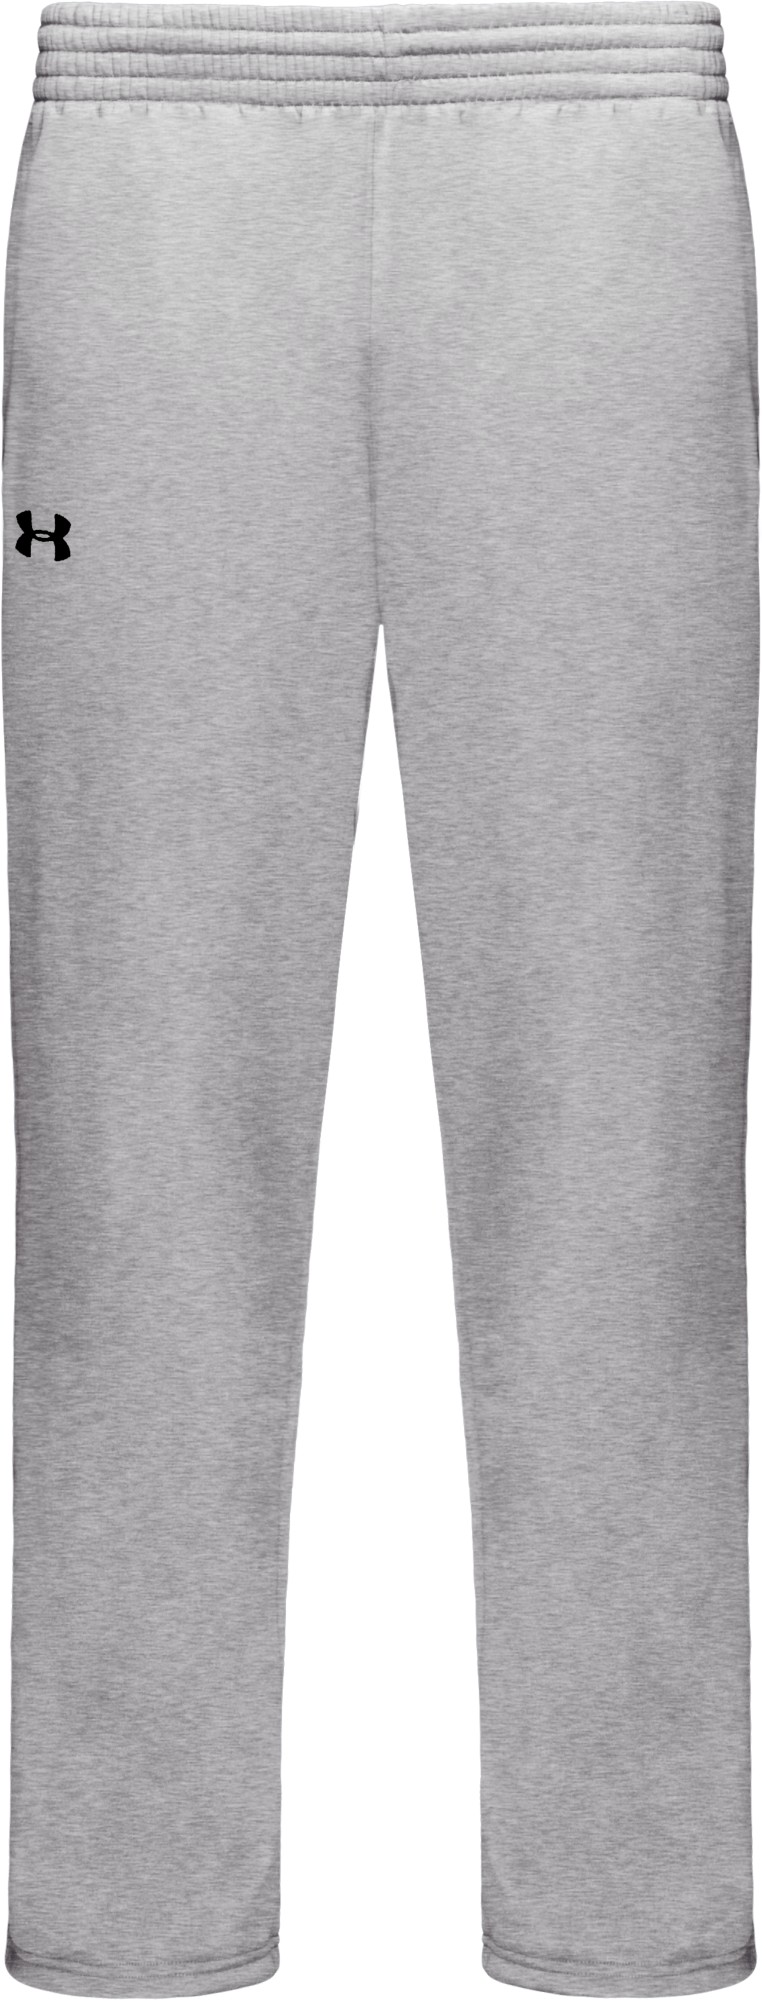 photo: Under Armour Boys' Armour Fleece Pant fleece pant